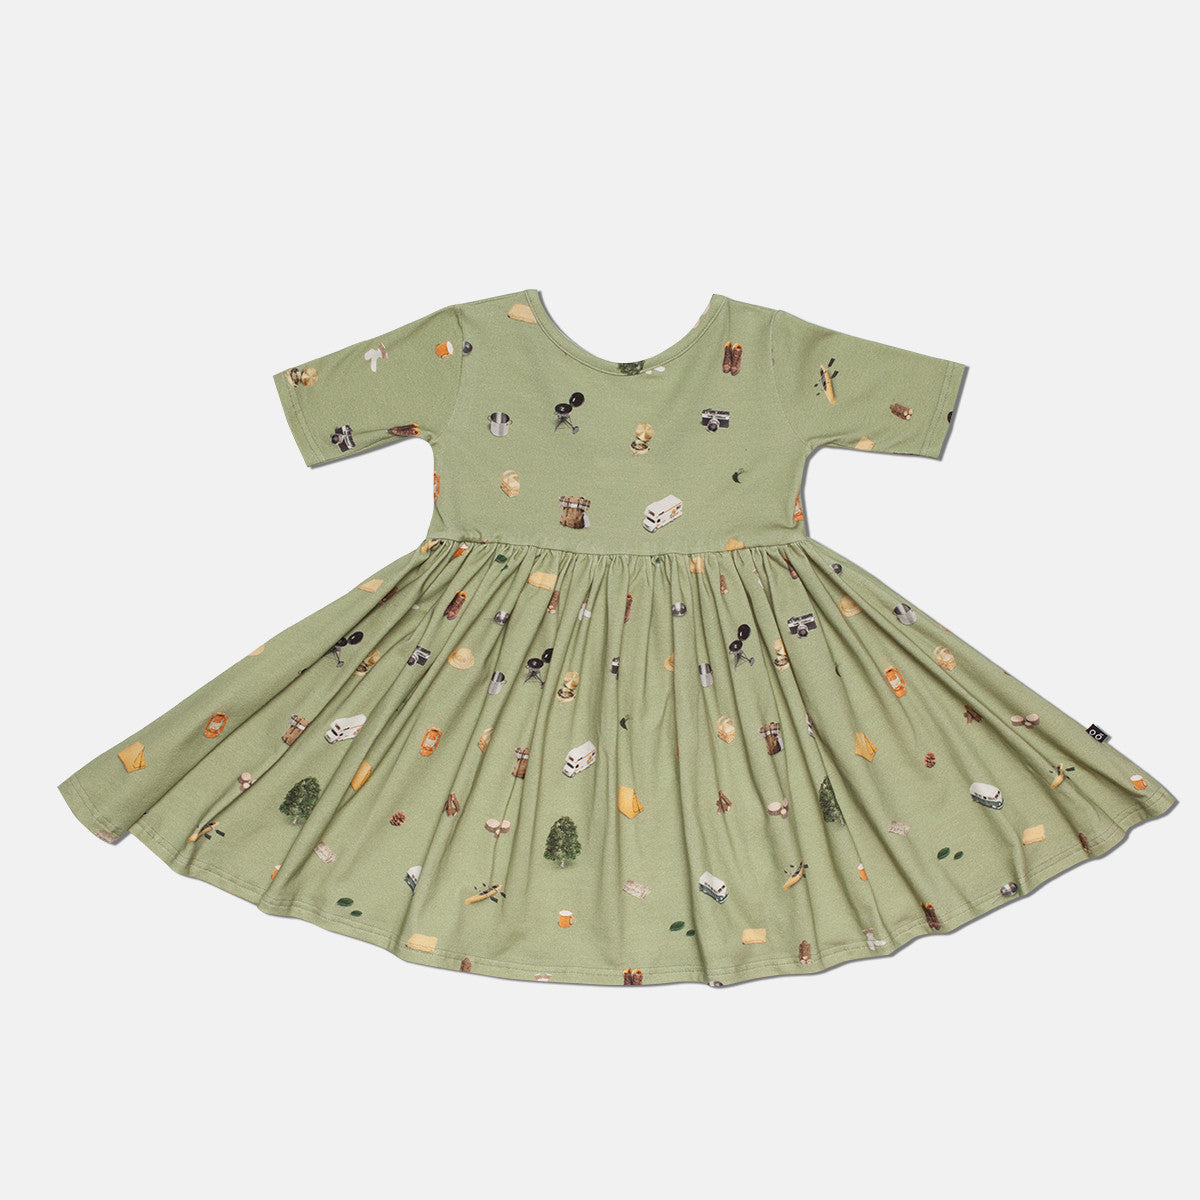 Sleeve Camper Dress - 22€ (Antes 44€)